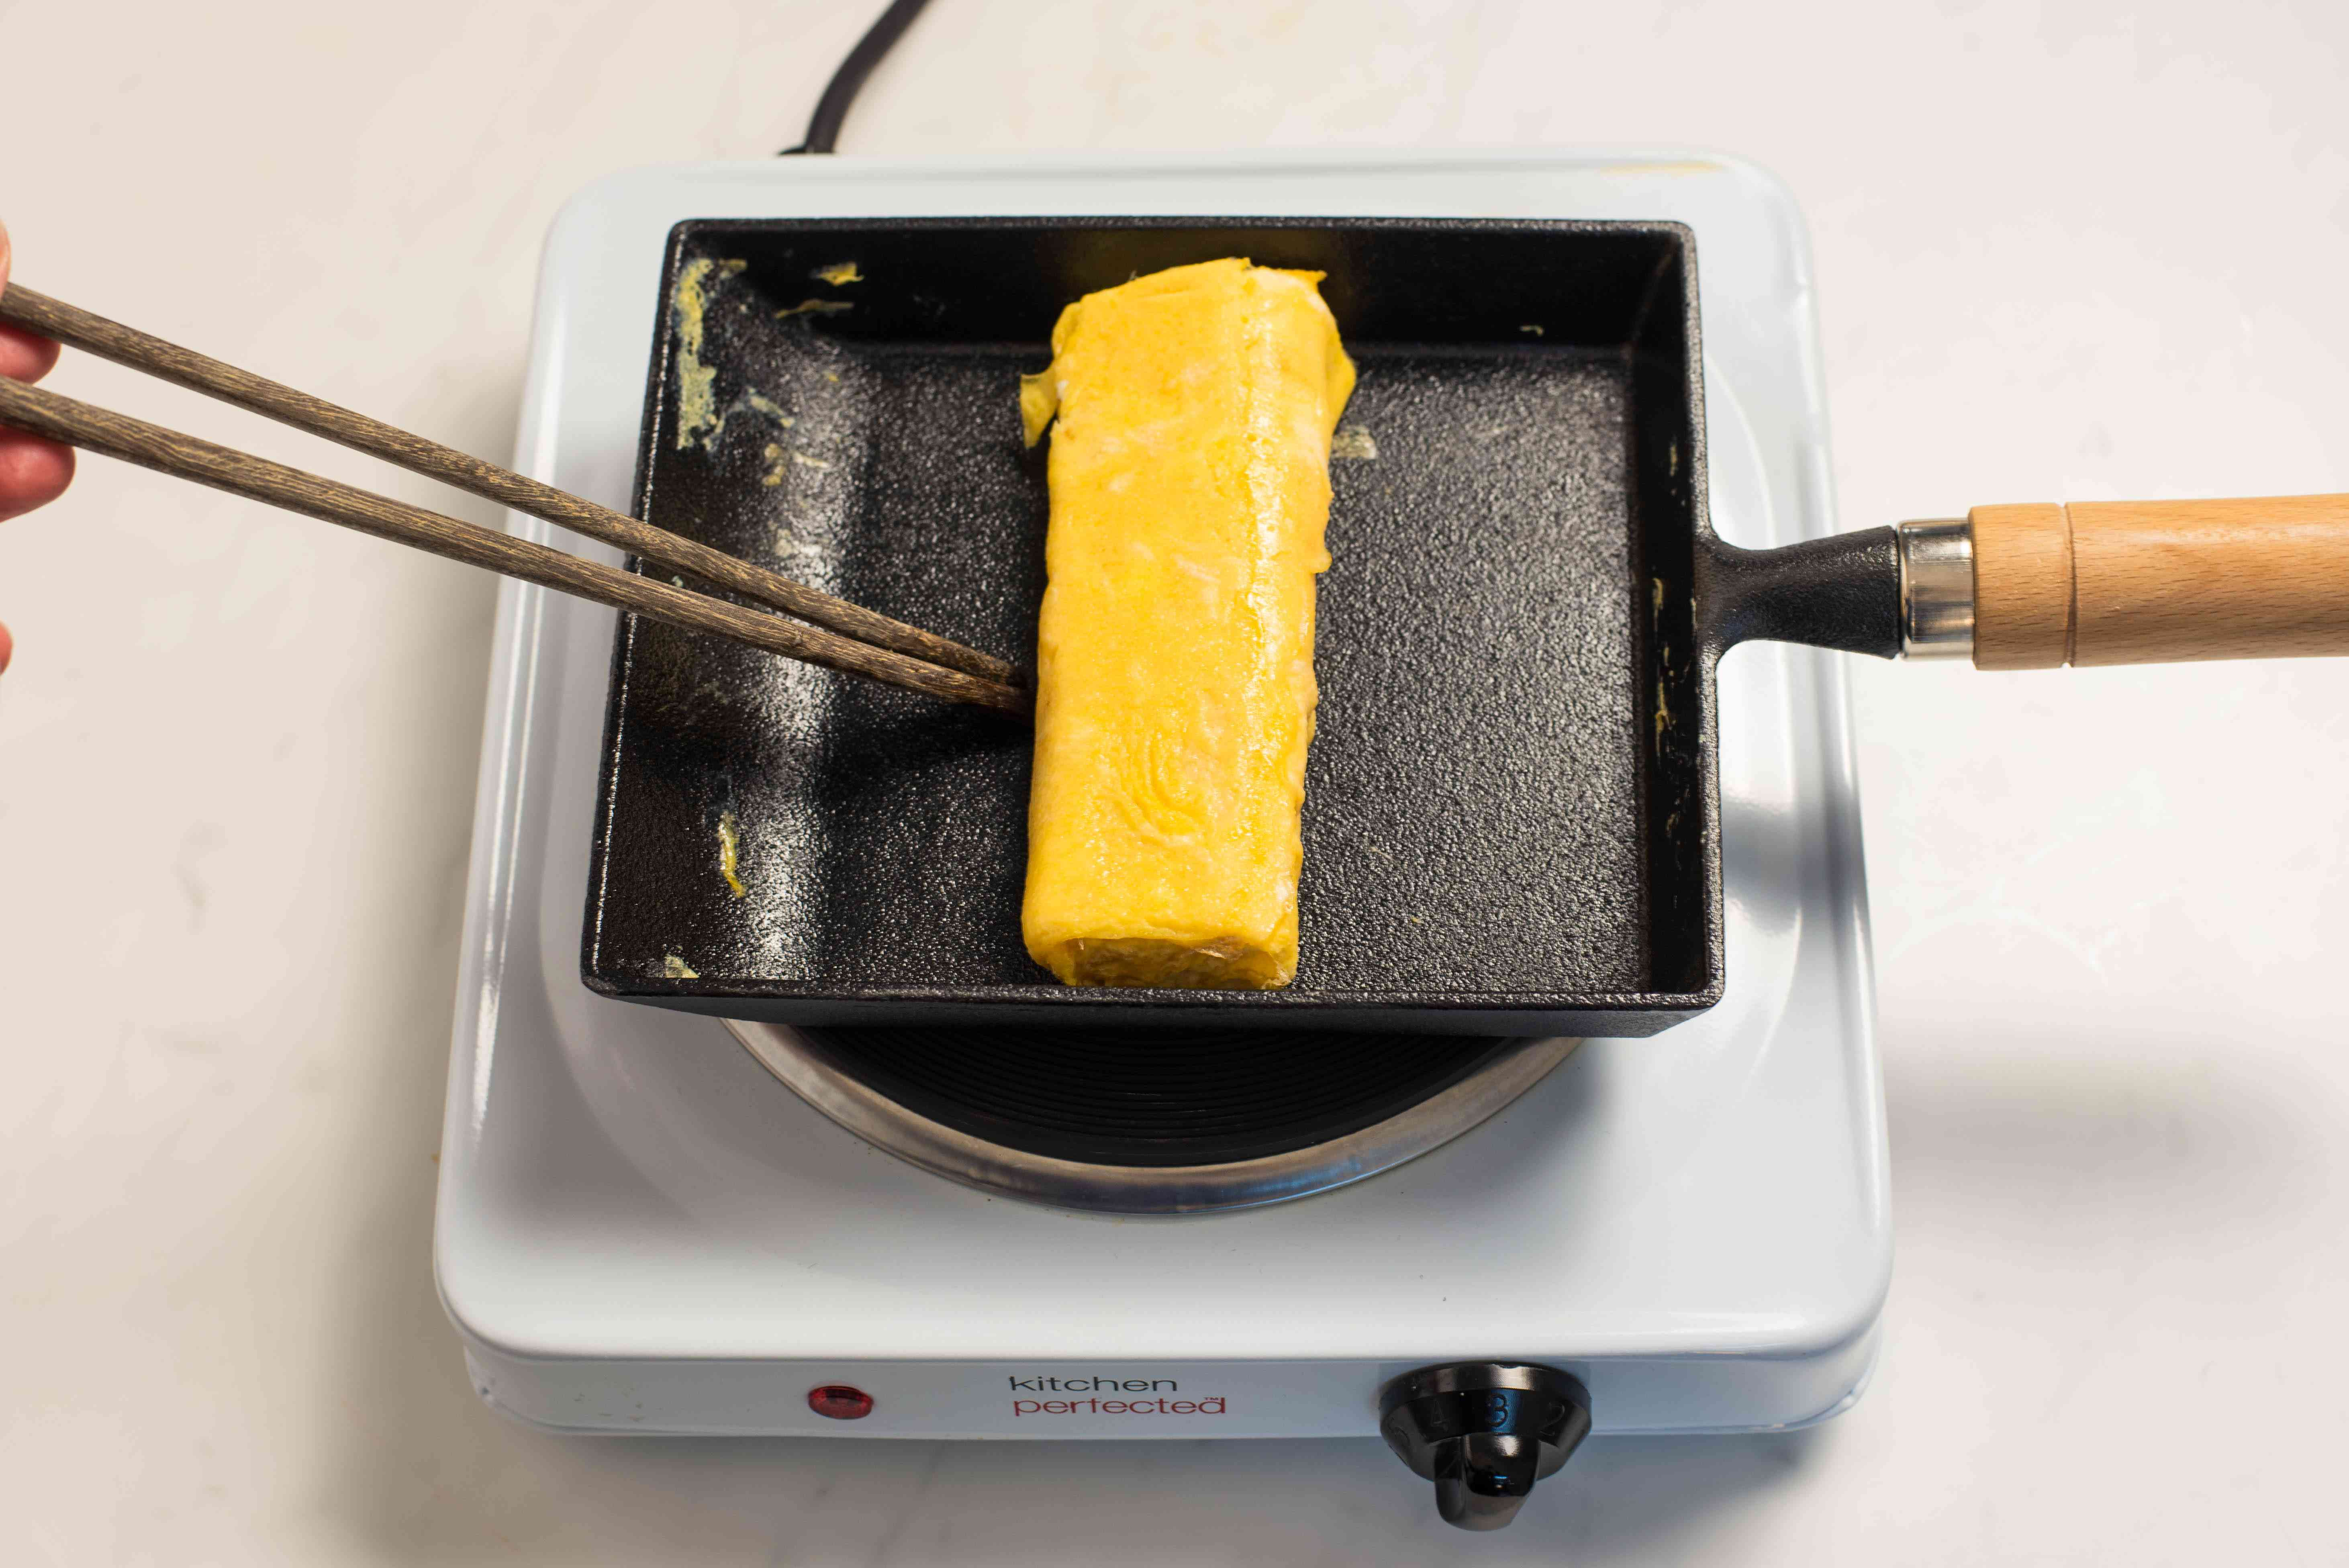 Cook omelet